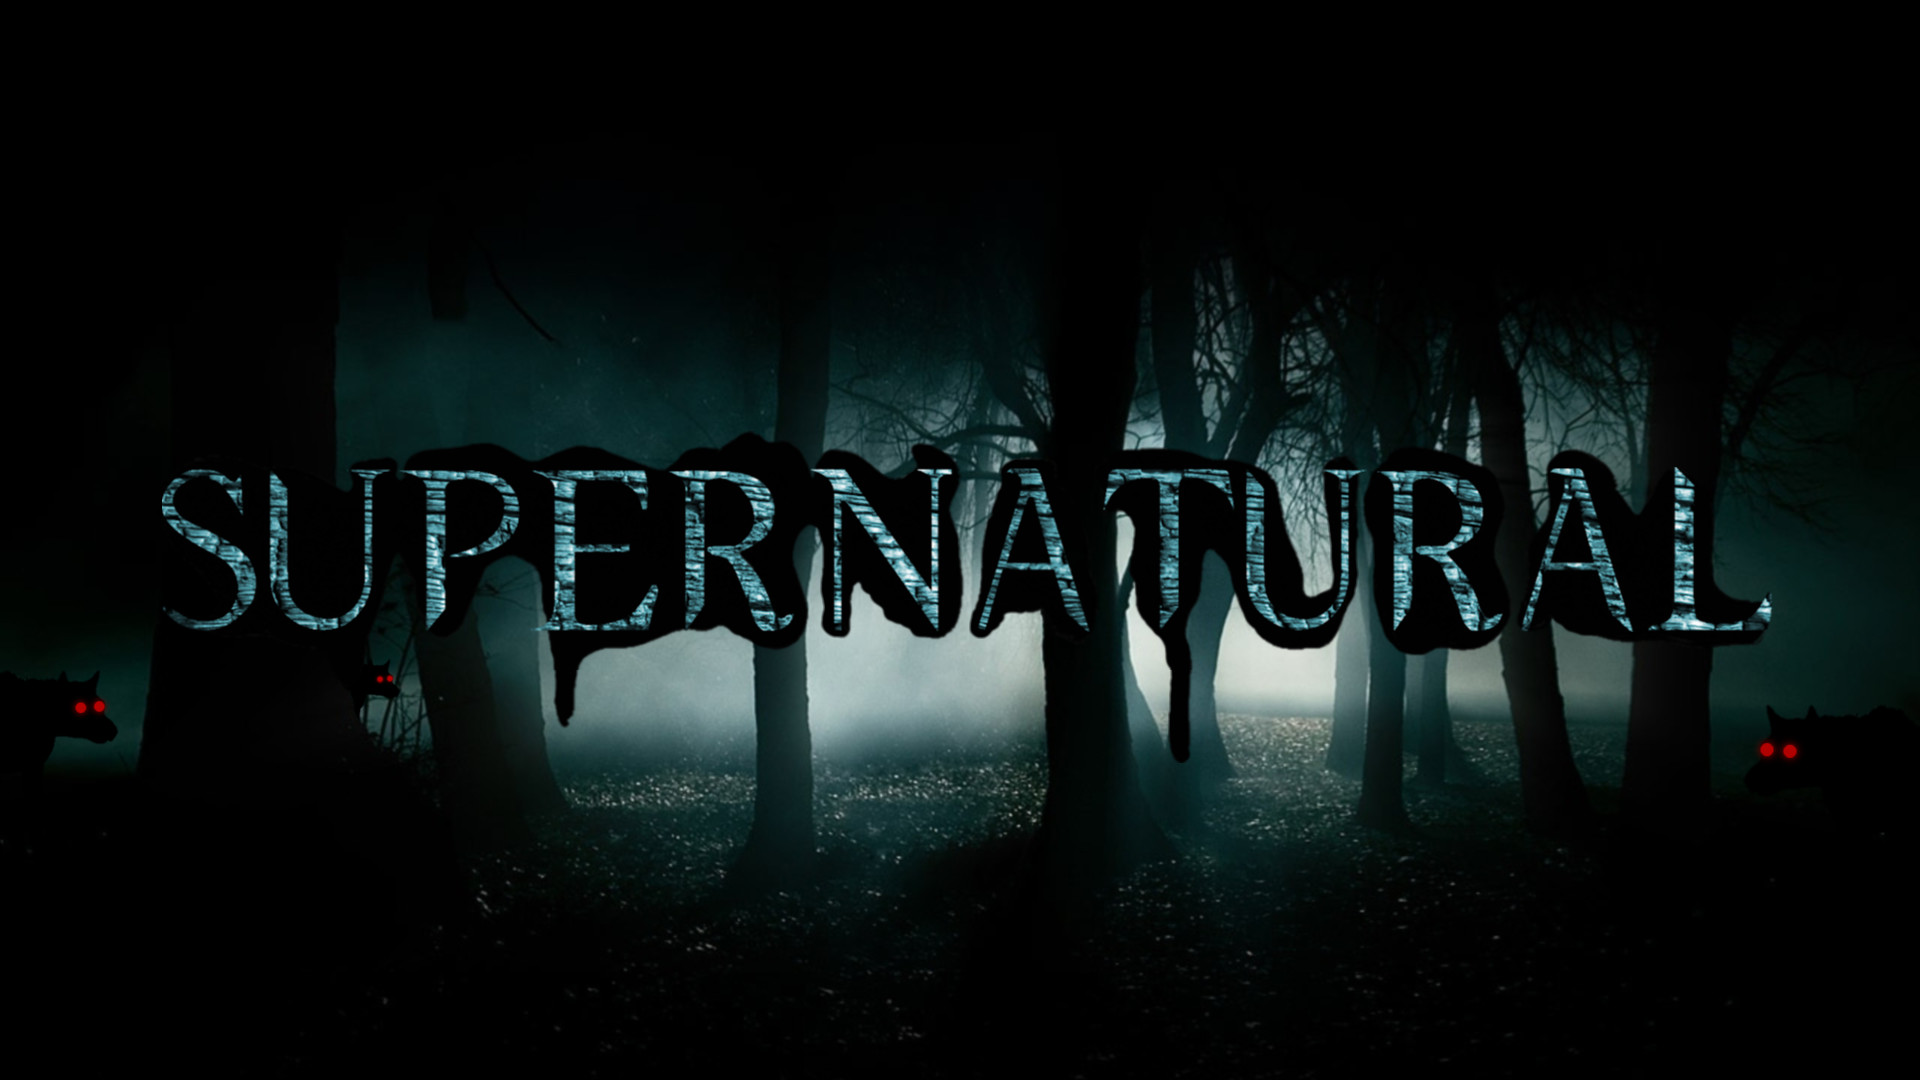 1920x1080 Music Love images supernatural HD wallpaper and background photos